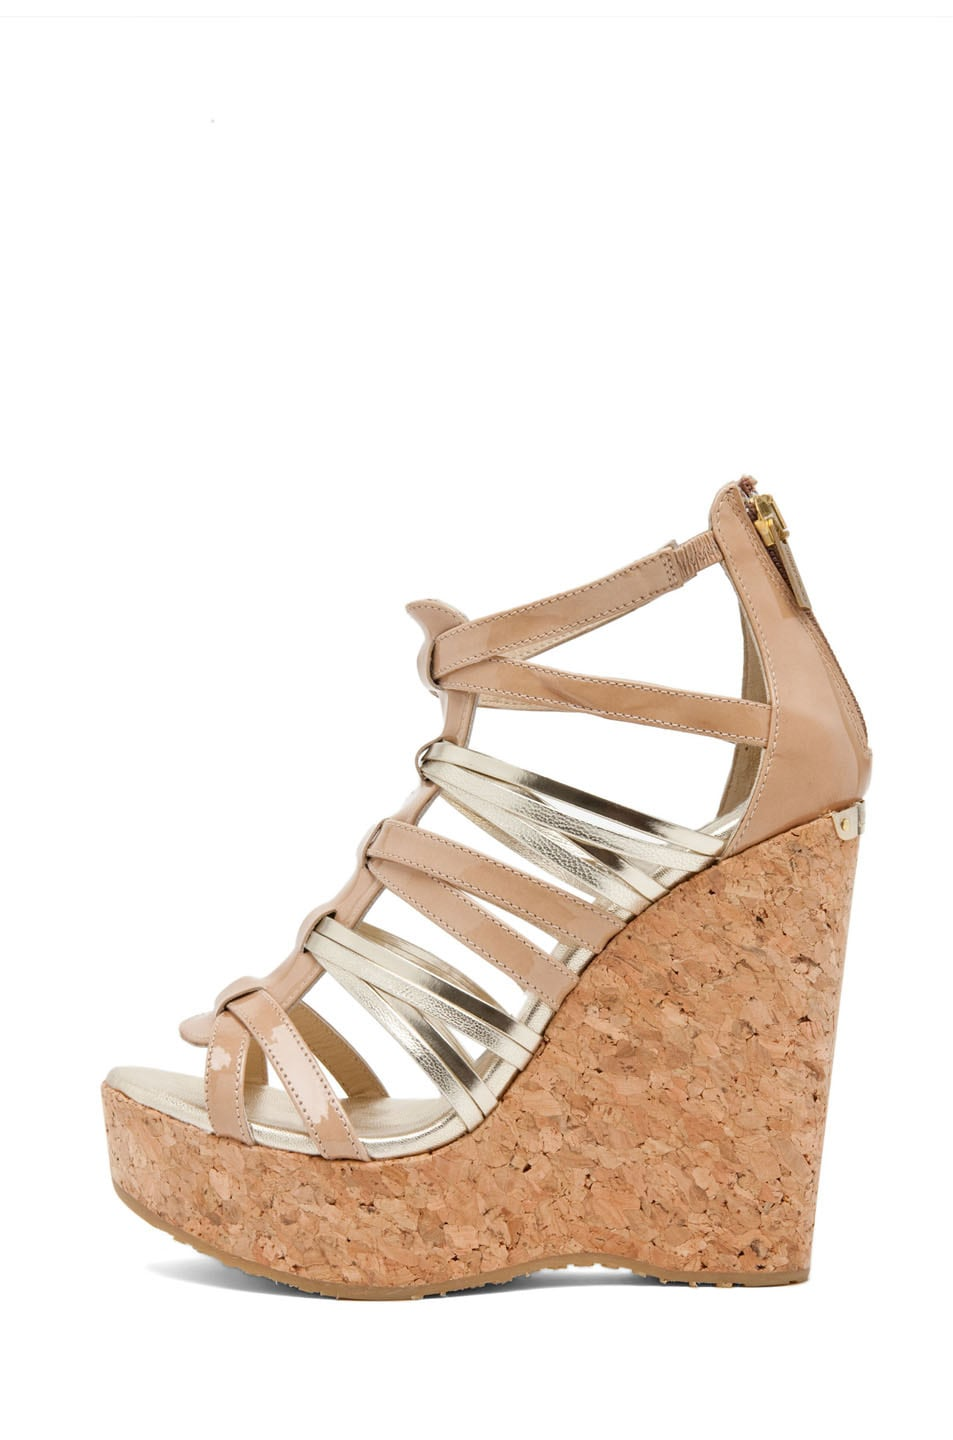 Image 1 of Jimmy Choo Pekabo Cork Wedge Sandal in Nude